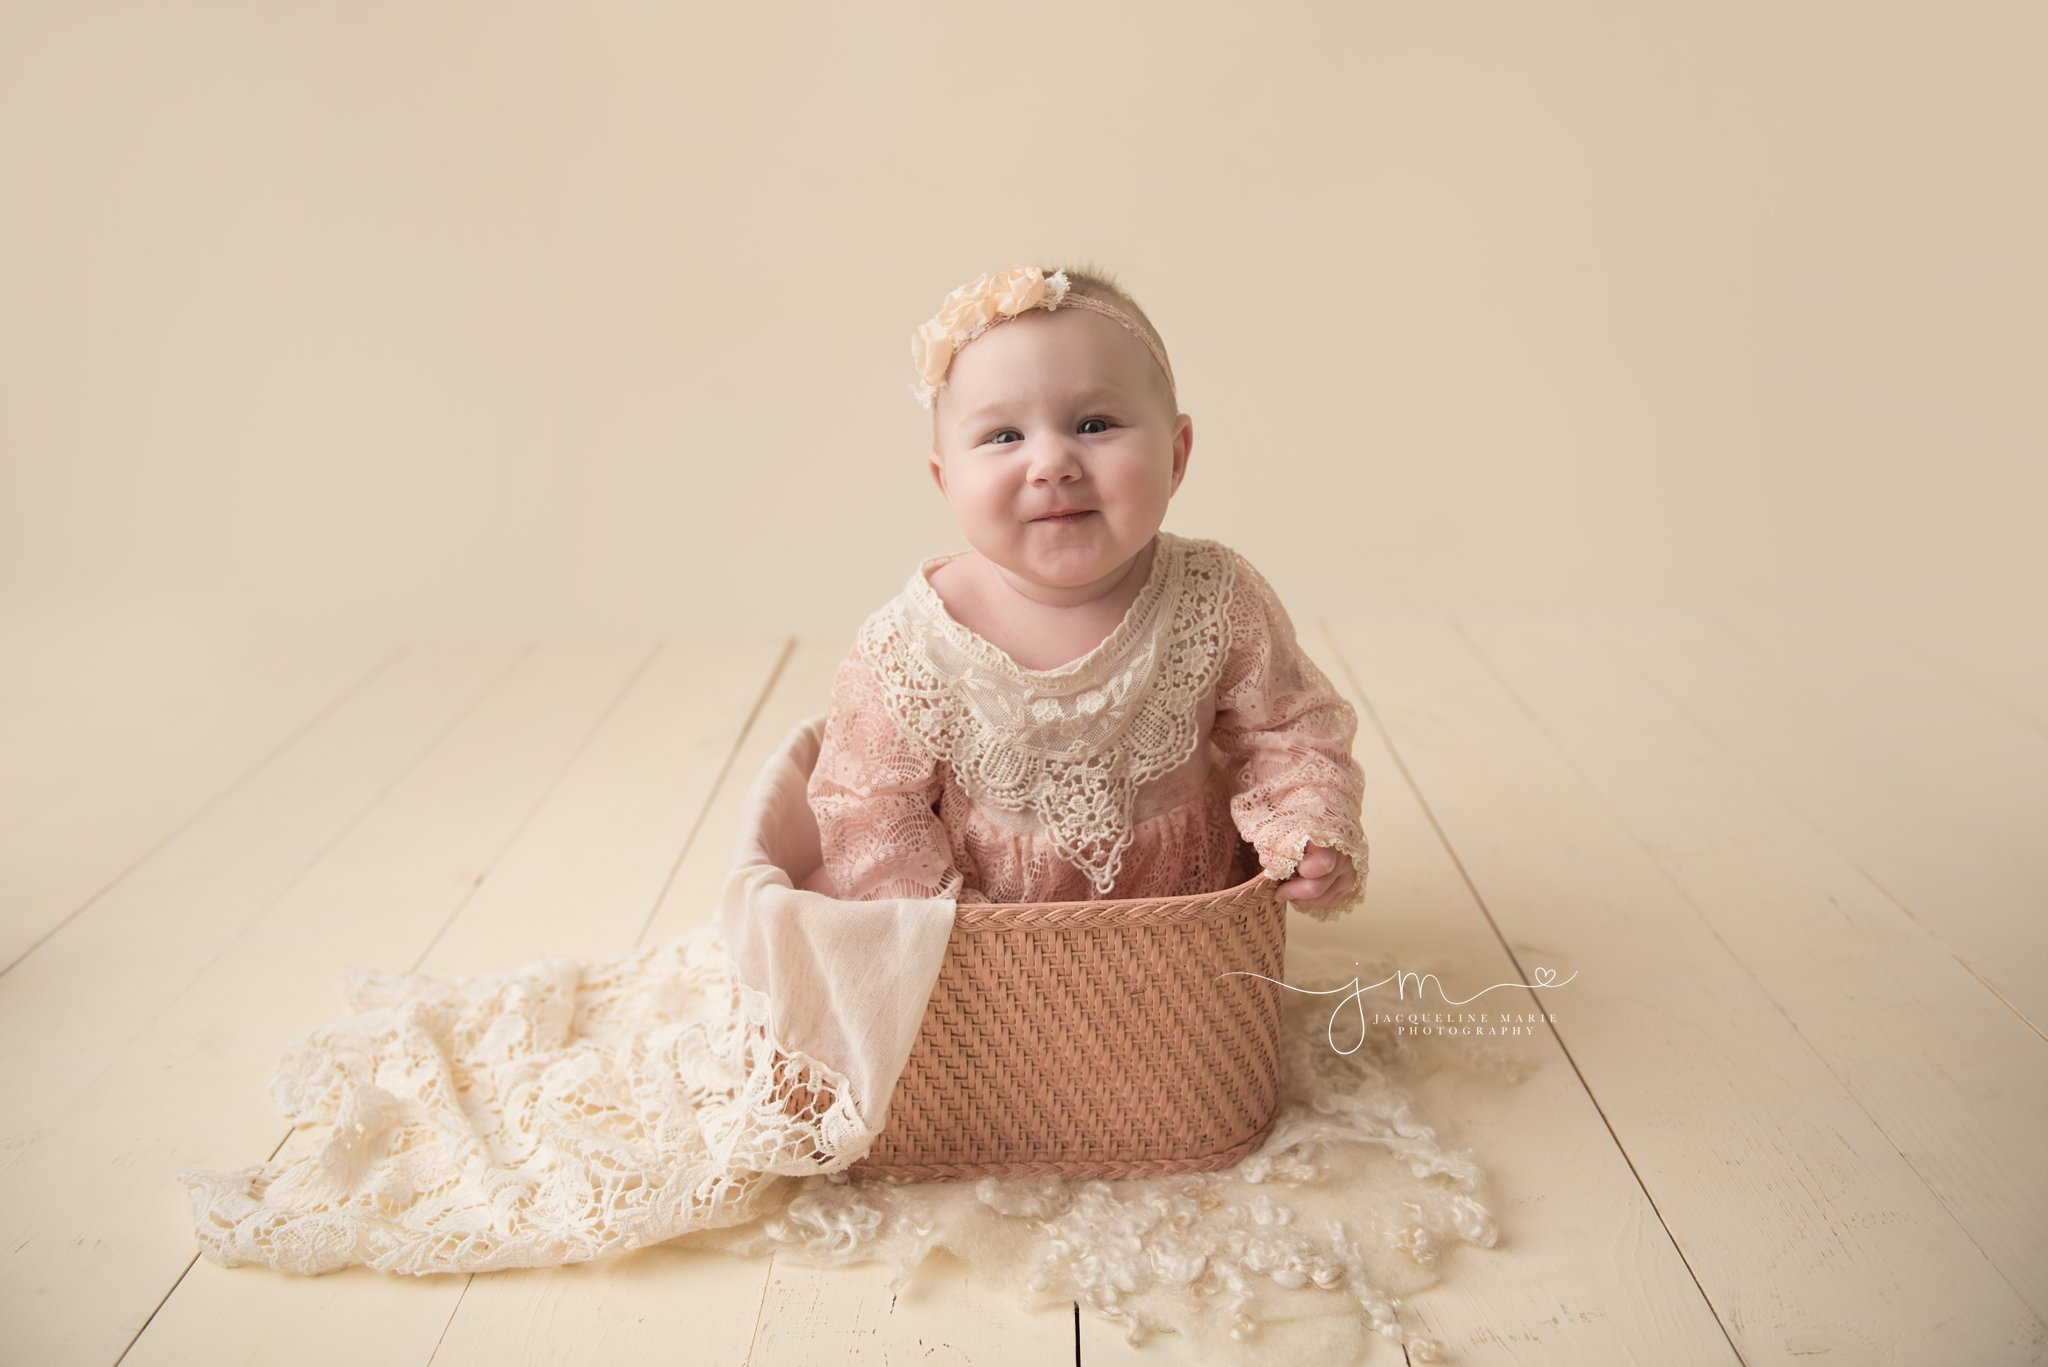 columbus ohio baby photographer features images of sophia wearing pink lace romper and sitting in pink vintage basket